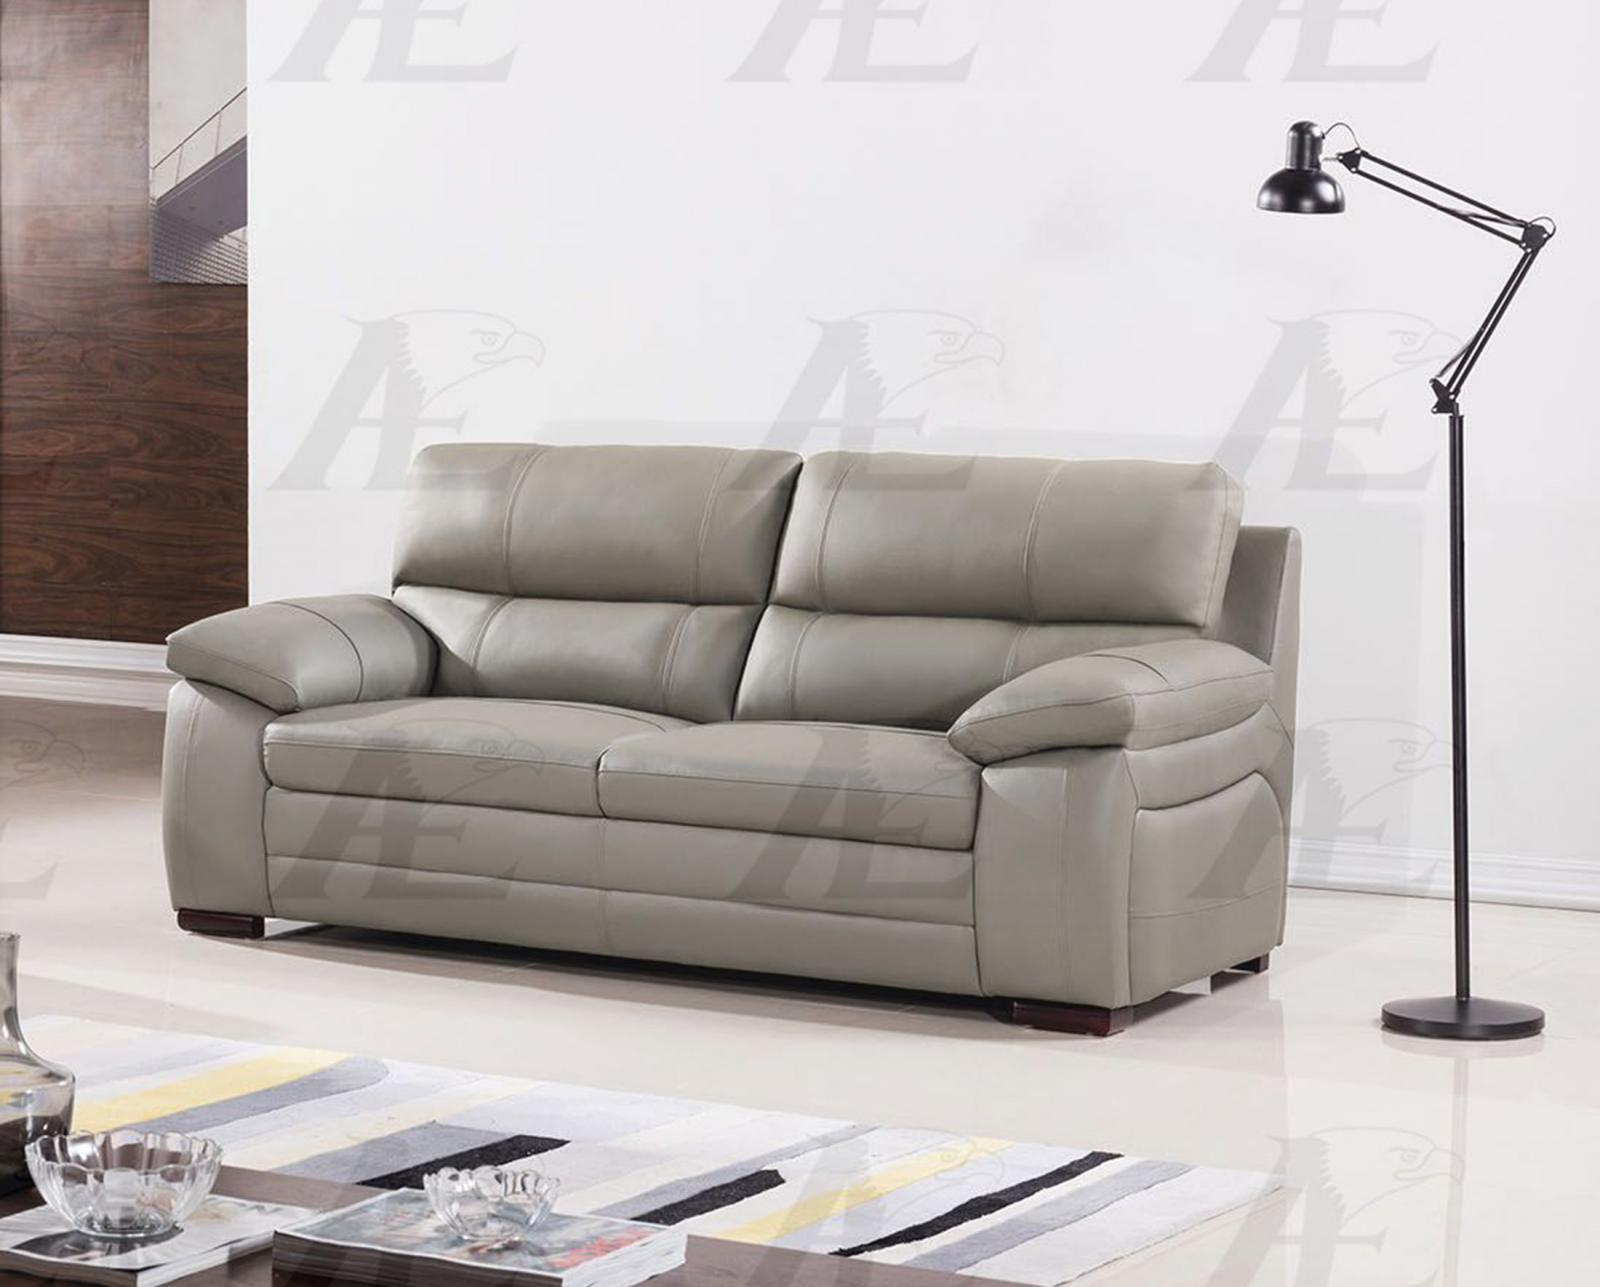 American Eagle EK-B520-GR Gray Sofa Genuine Leather